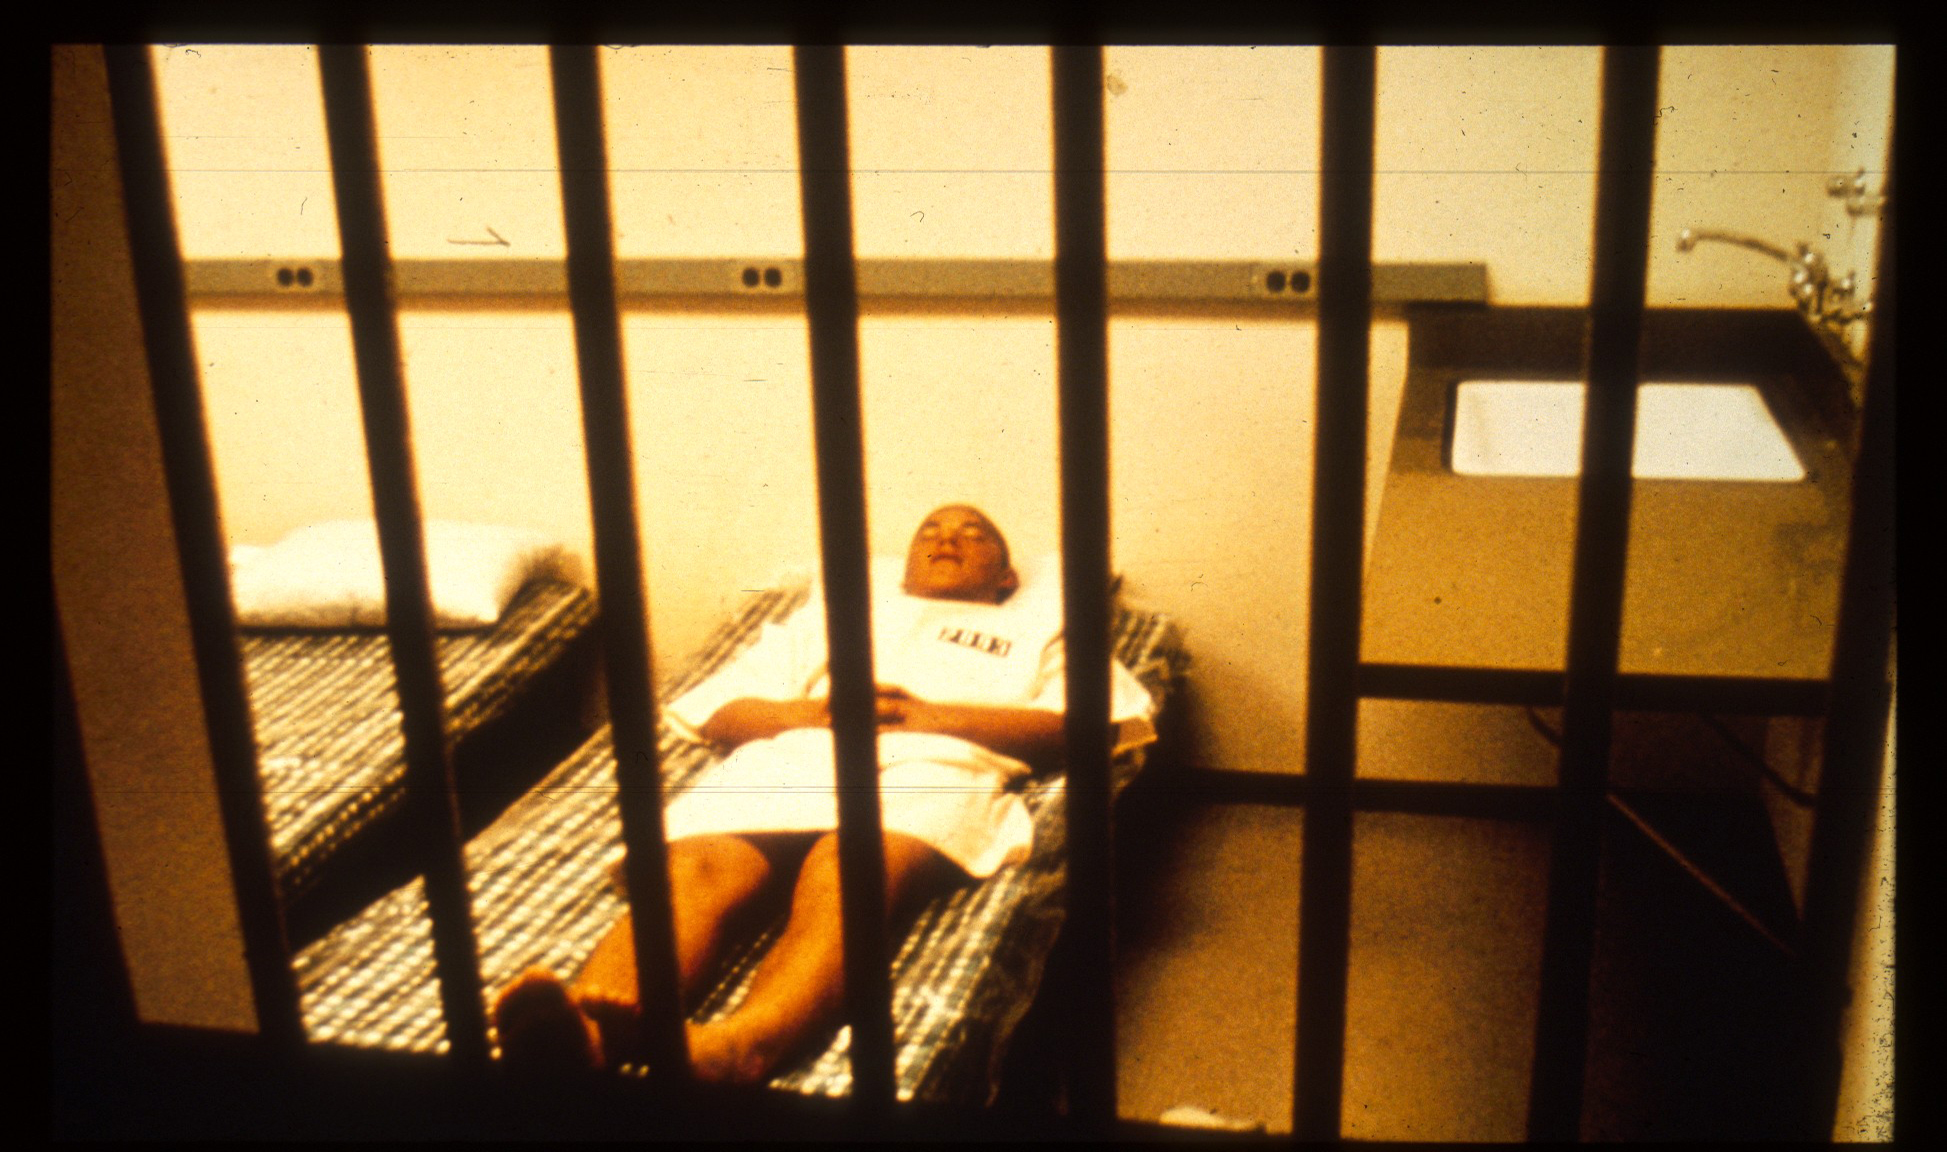 Prisoner Resting in Cell